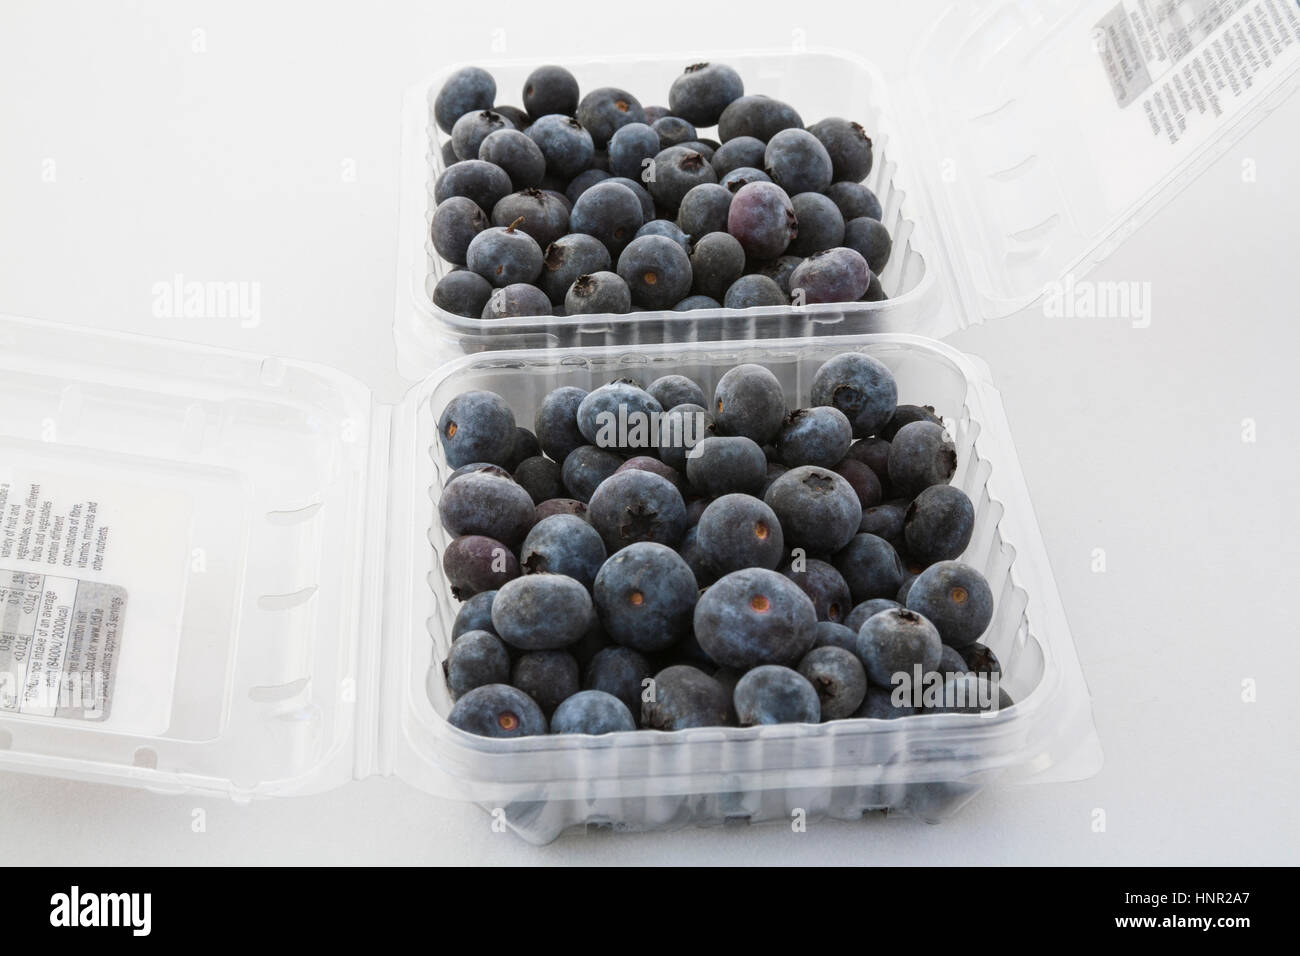 Two plastic cartons containing fresh blueberries imported from Peru on white background soft fruit full of nutrients - Stock Image